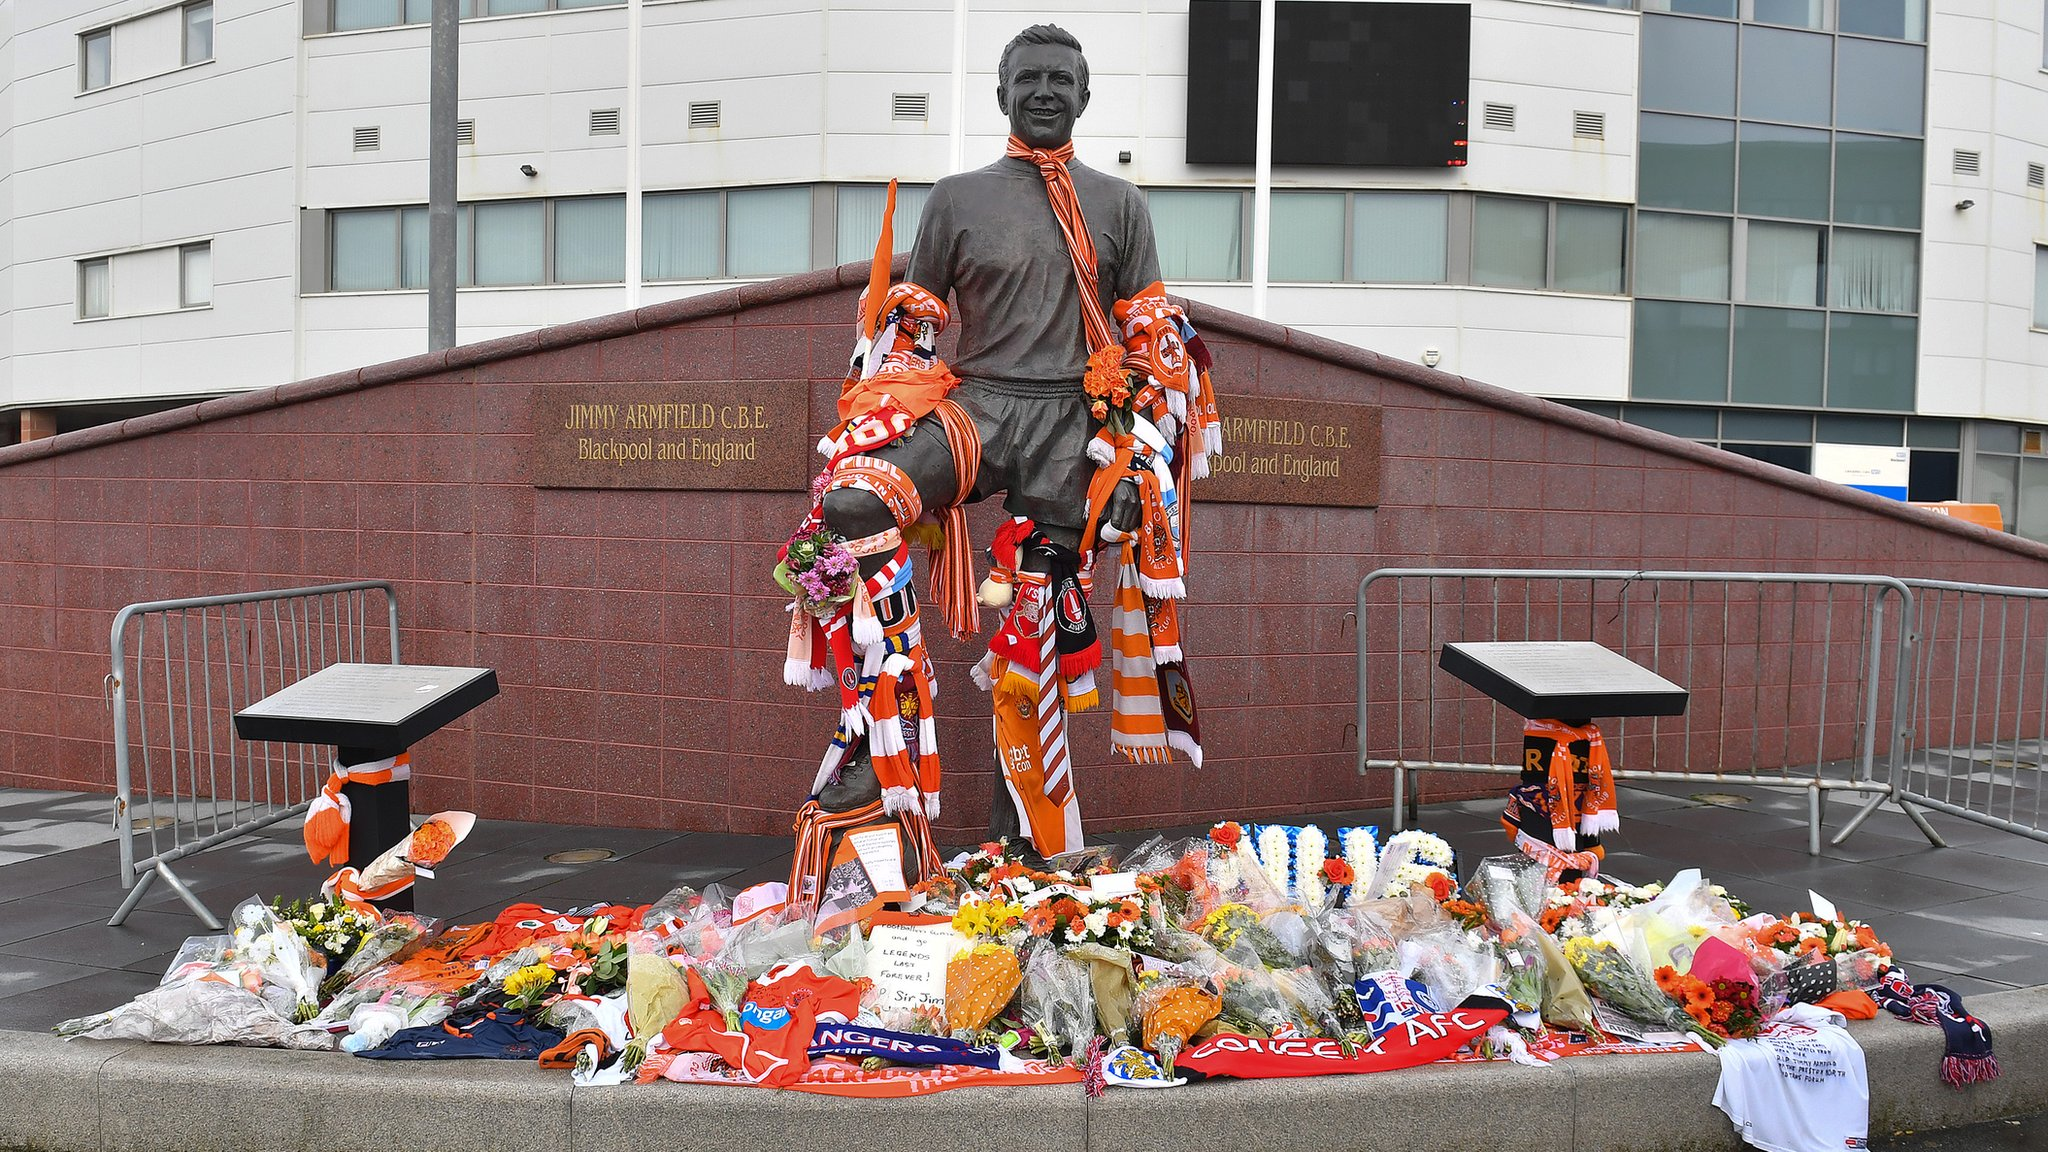 Blackpool match postponed as football pays tribute to Armfield